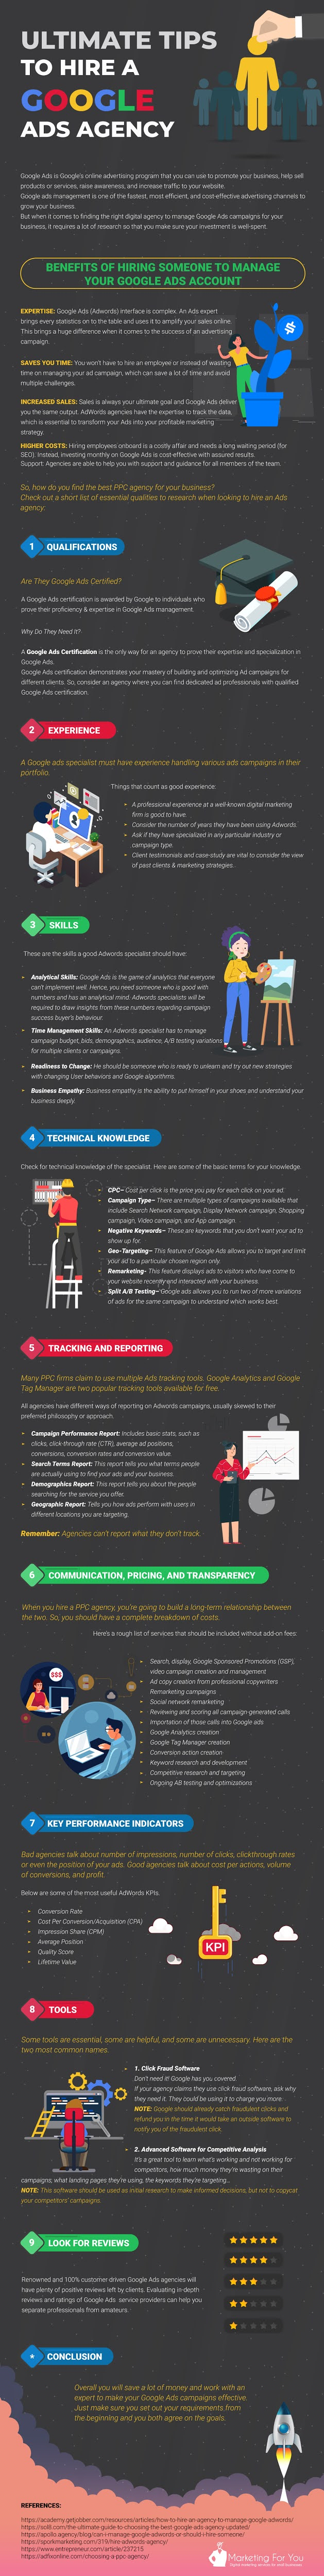 Ultimate Tips To Hire A Google Ads Agency #infographic